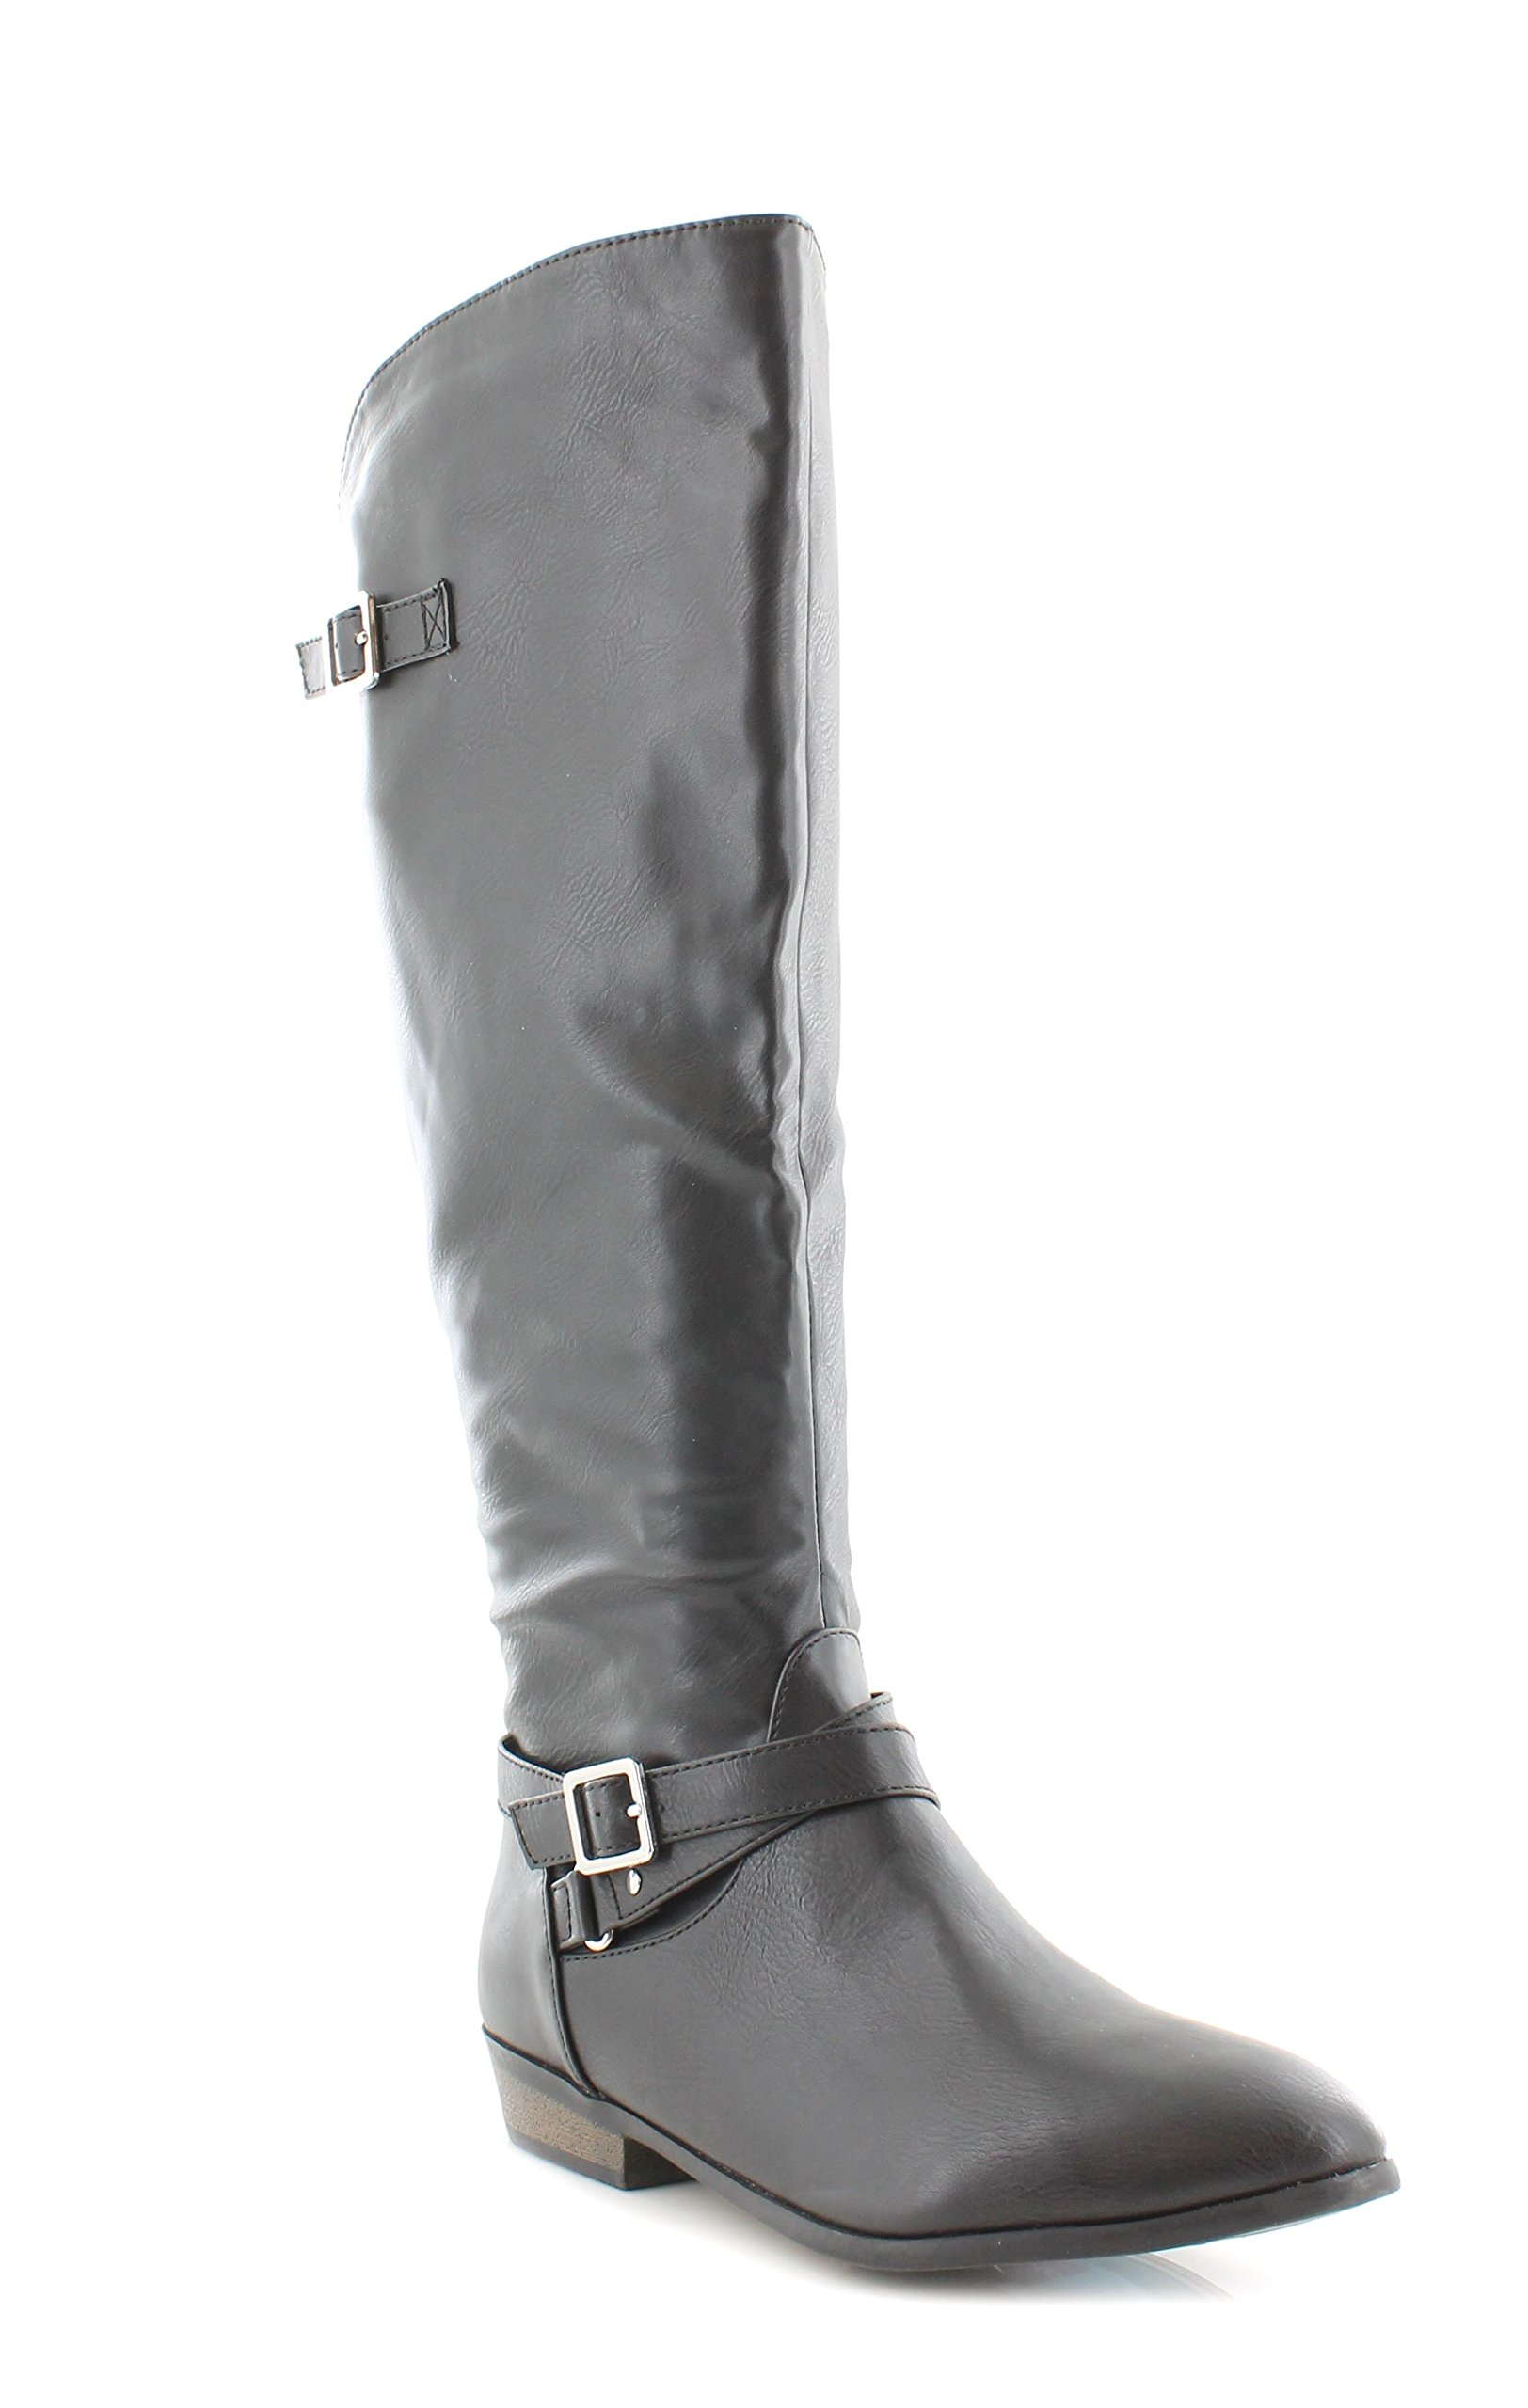 ed4a4148a5a Galleon - Material Girl Womens Capri Almond Toe Knee High Fashion Boots